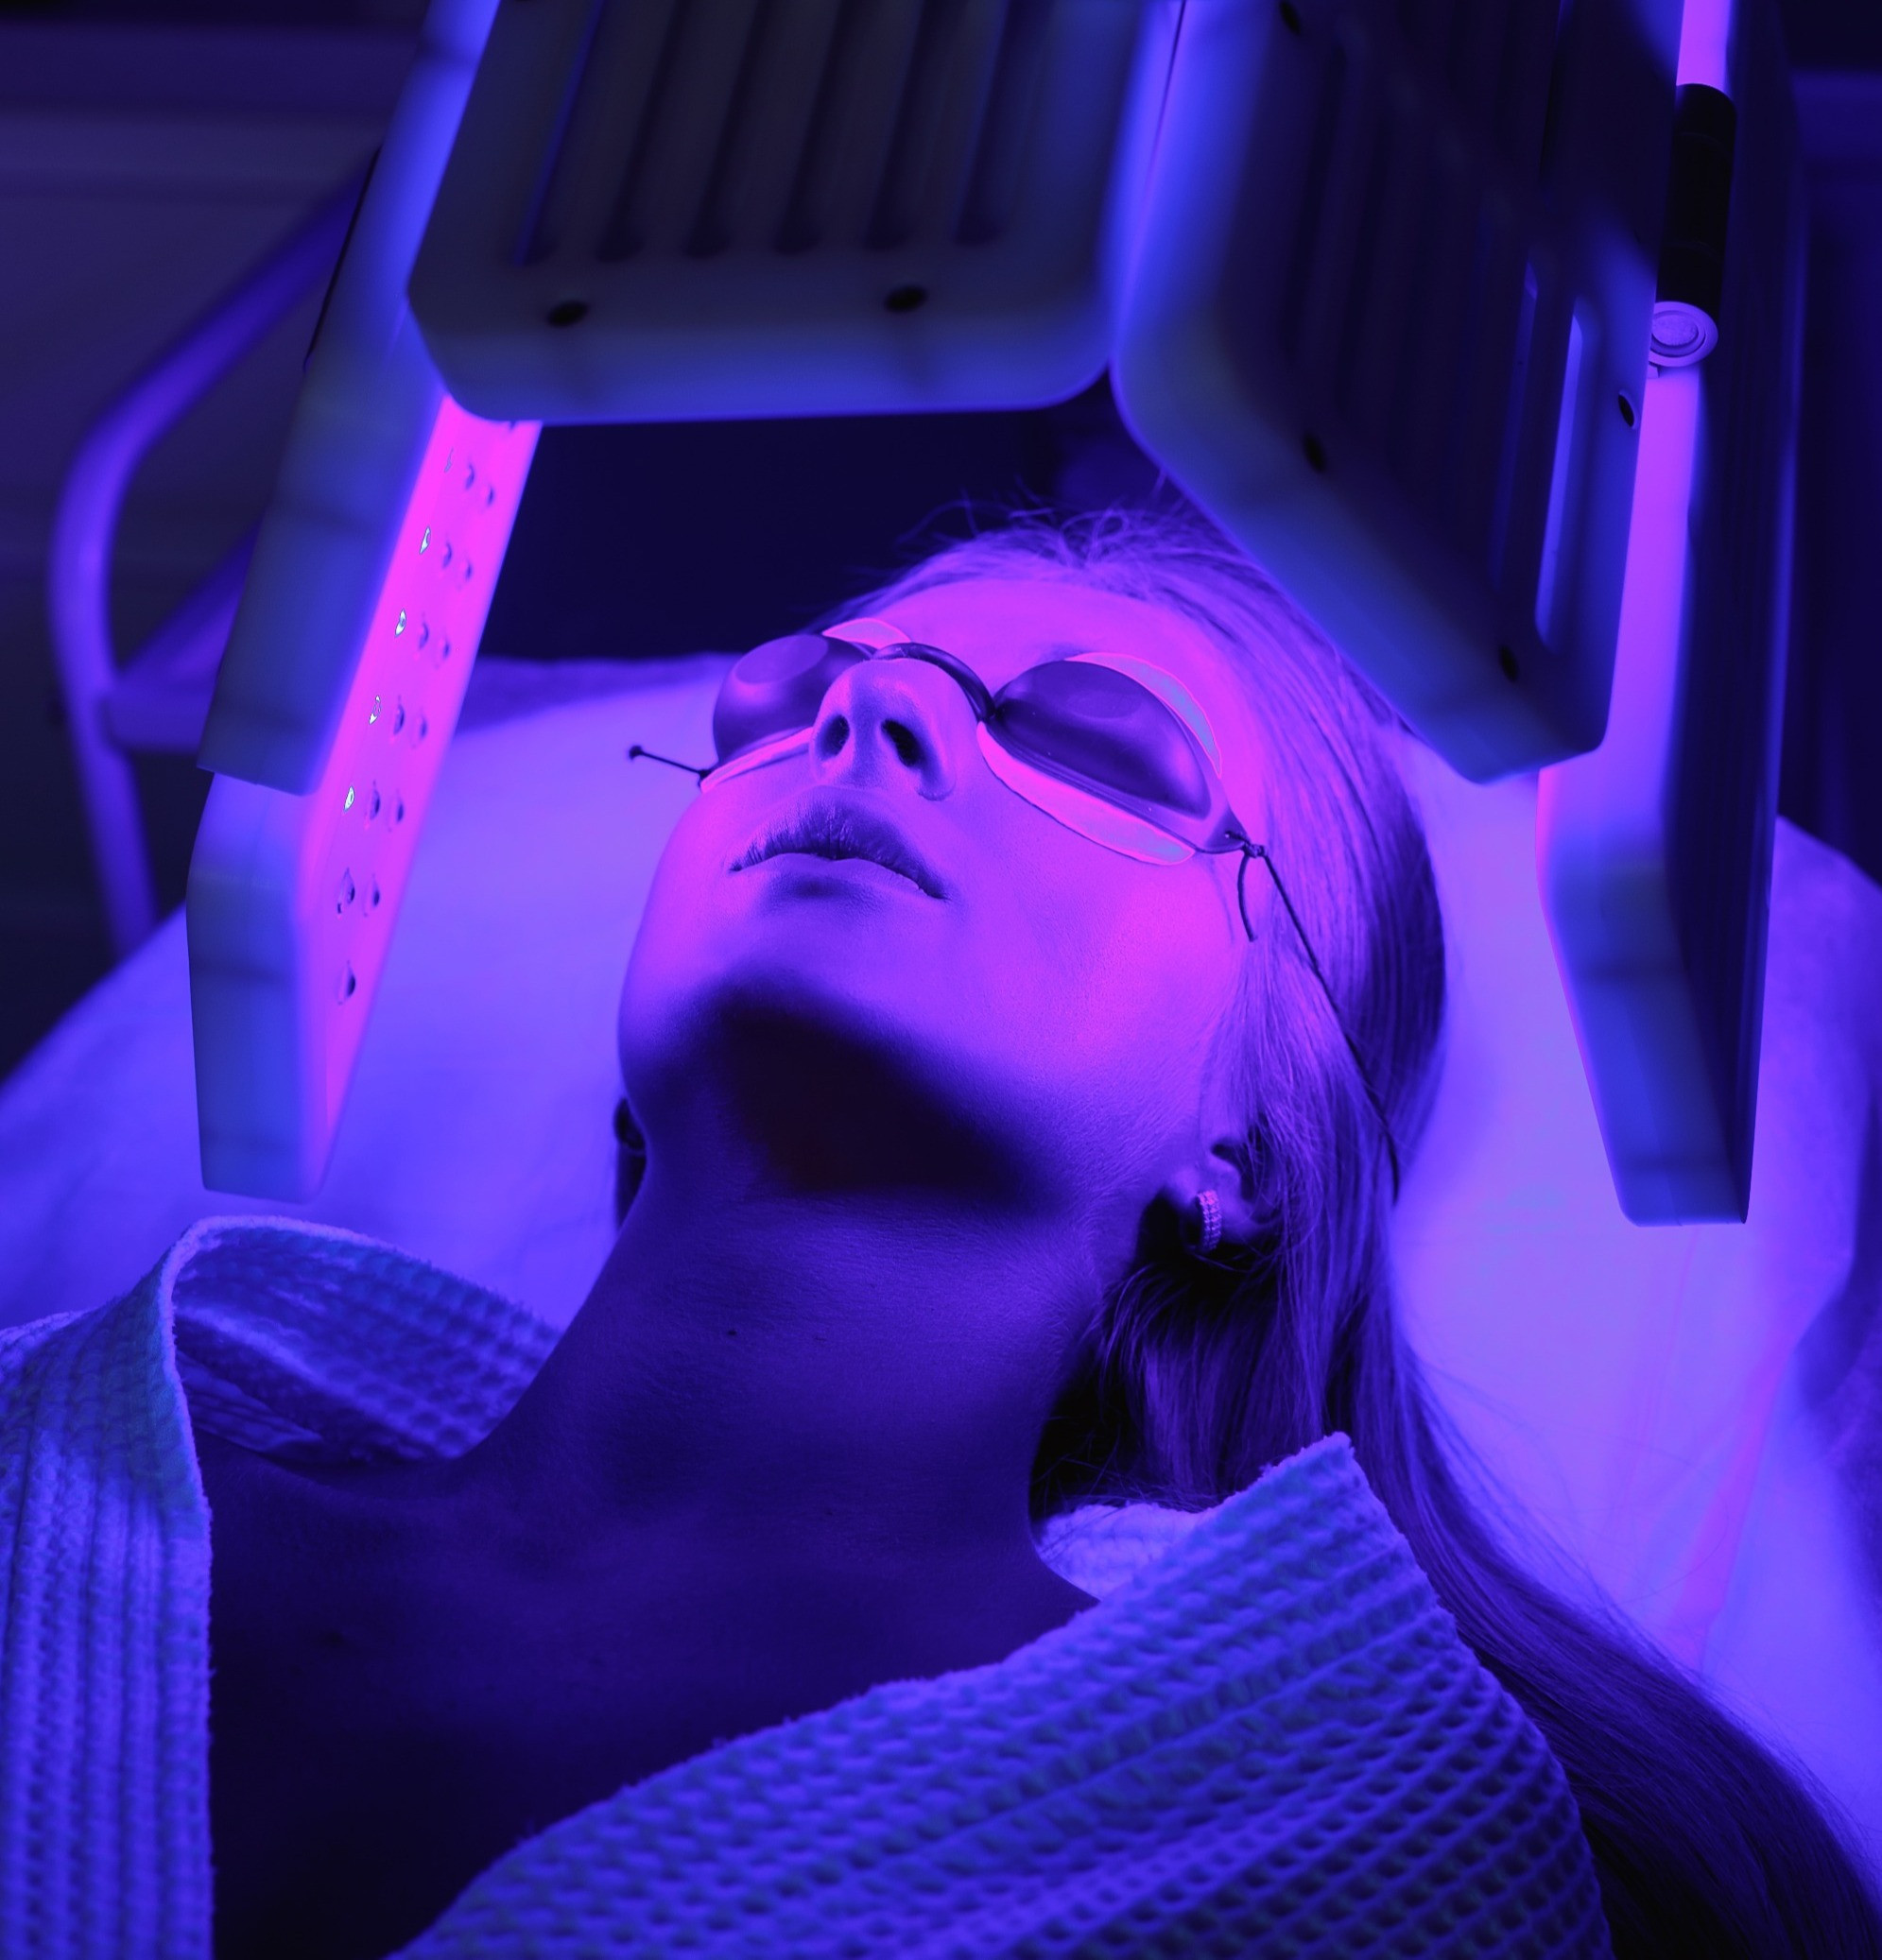 Acne treatment with W/ LED Therapy